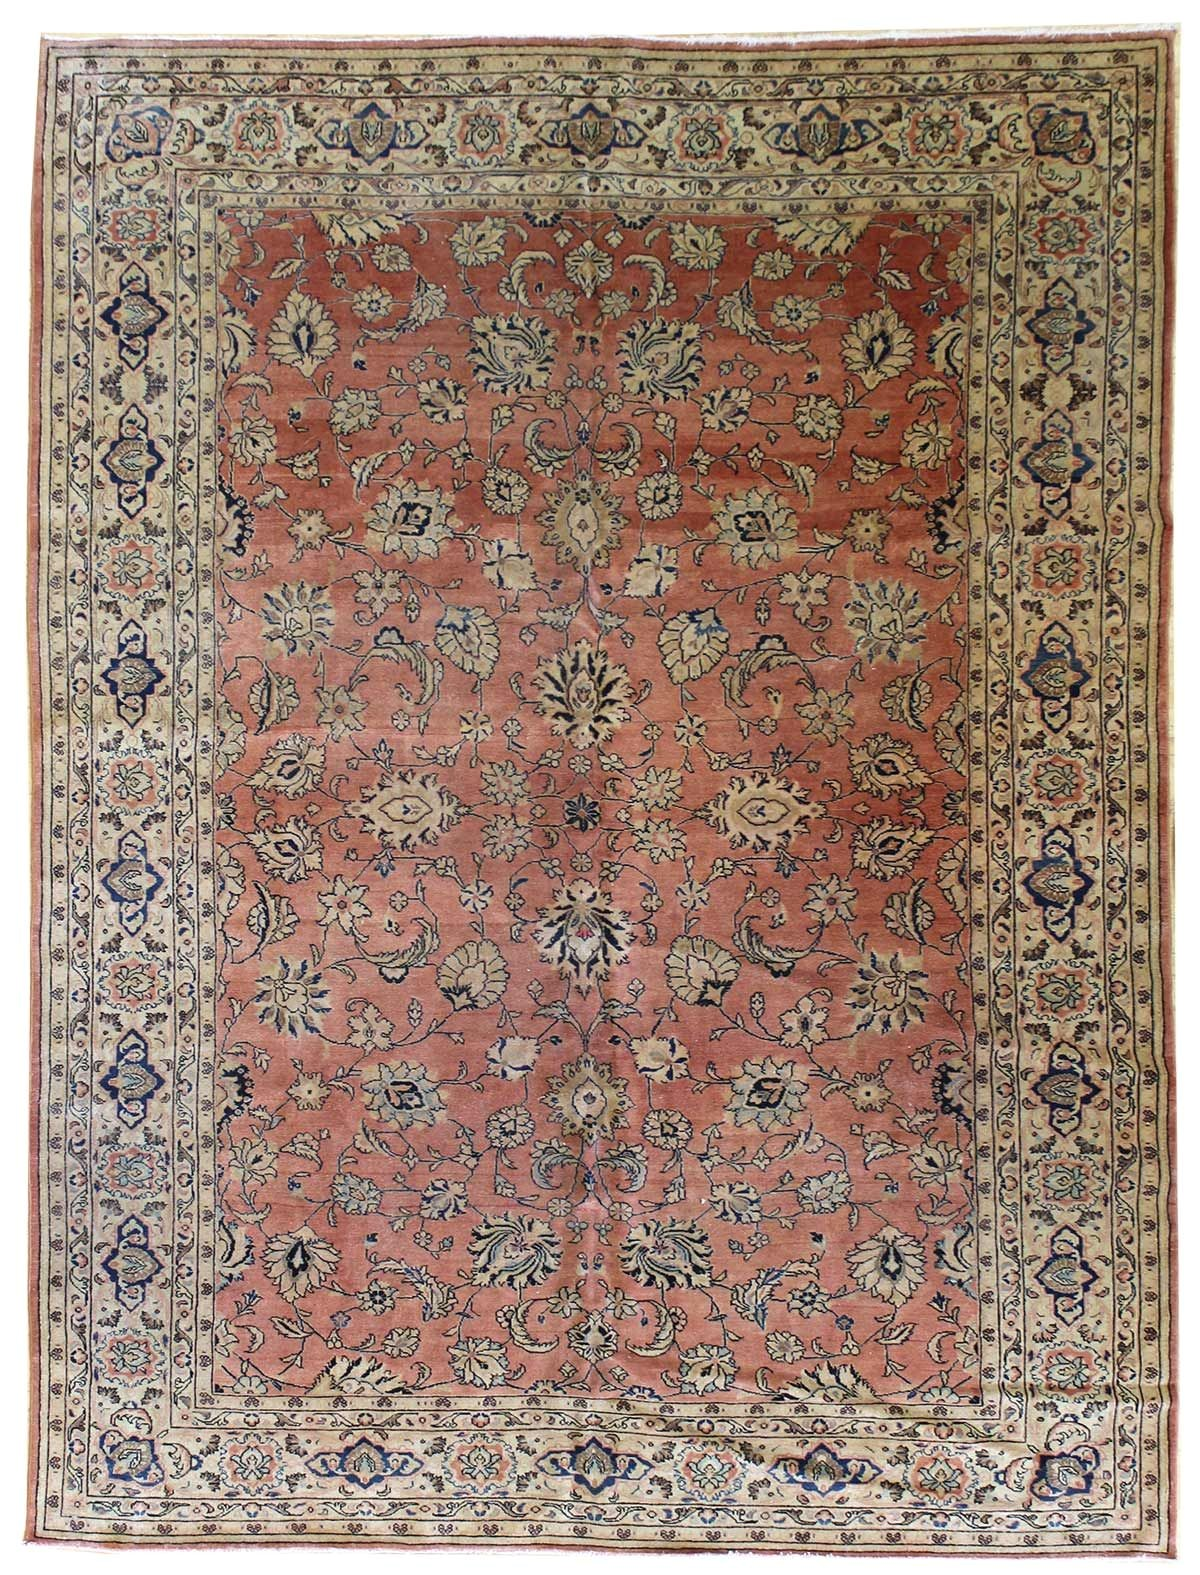 antique sarouk rugs gallery antique sarouk rug hand knotted in persia size 6 feet 10 inch es x 10 feet 1 inch es